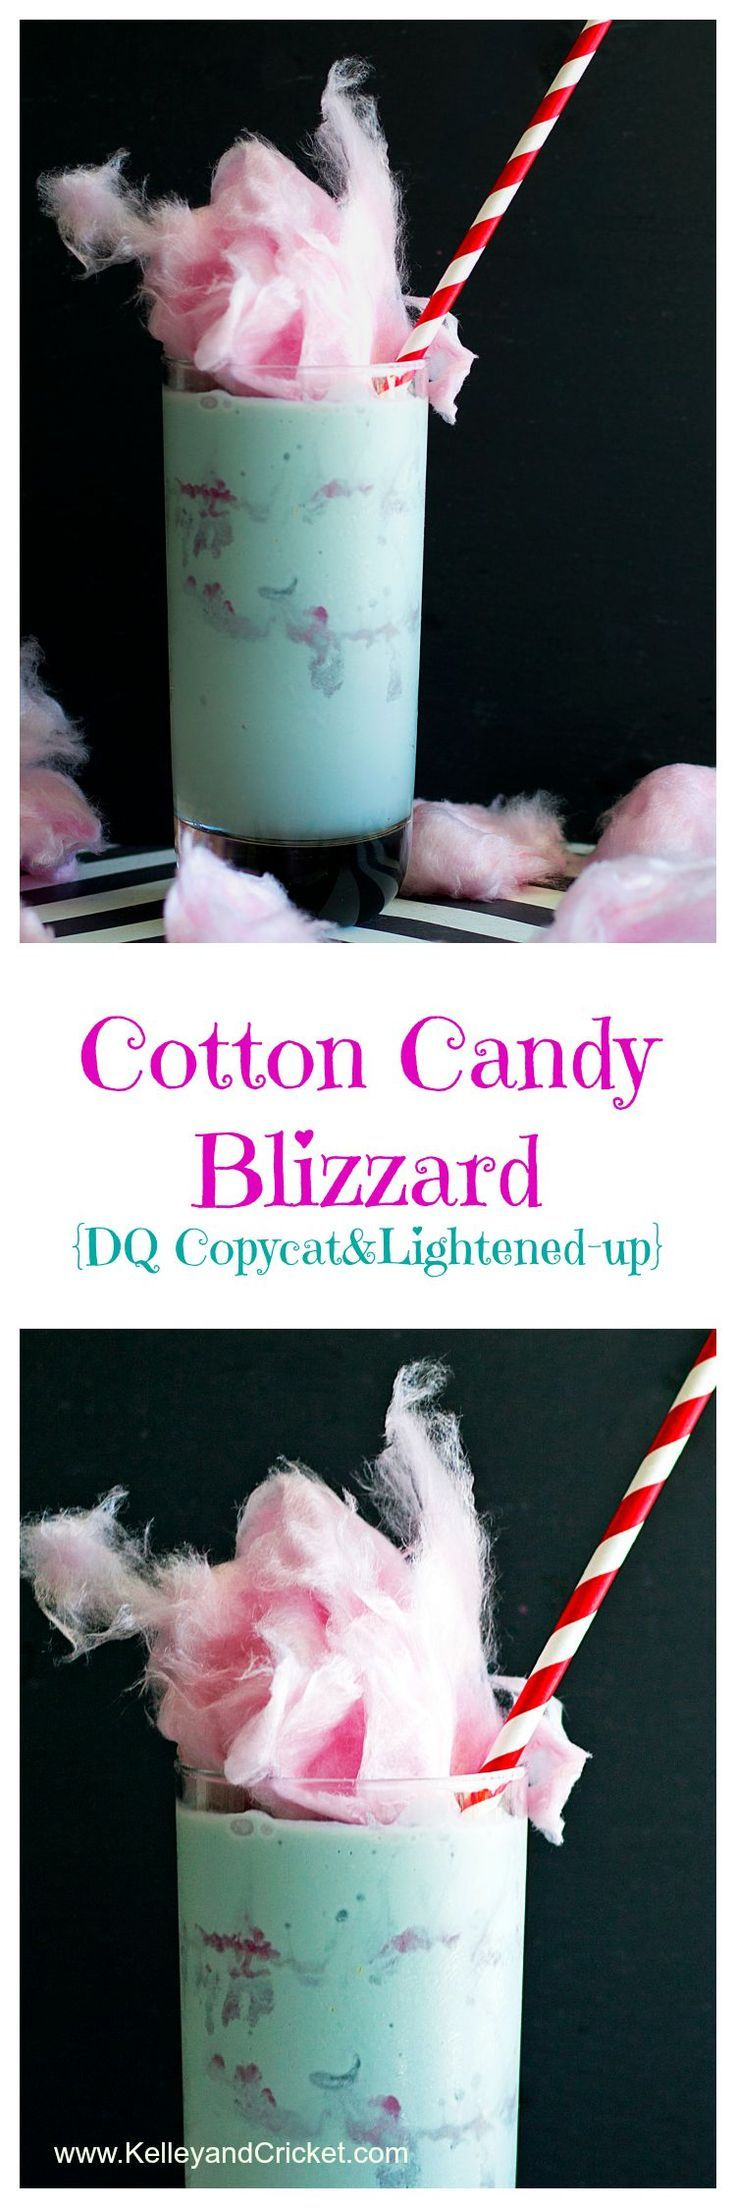 Delicious and delightful, this Cotton Candy Blizzard will MAKE your day! Go ahead and indulge without gilt because it happens be be secretly light! Dairy-free option too!(Baking Treats Dairy Free)